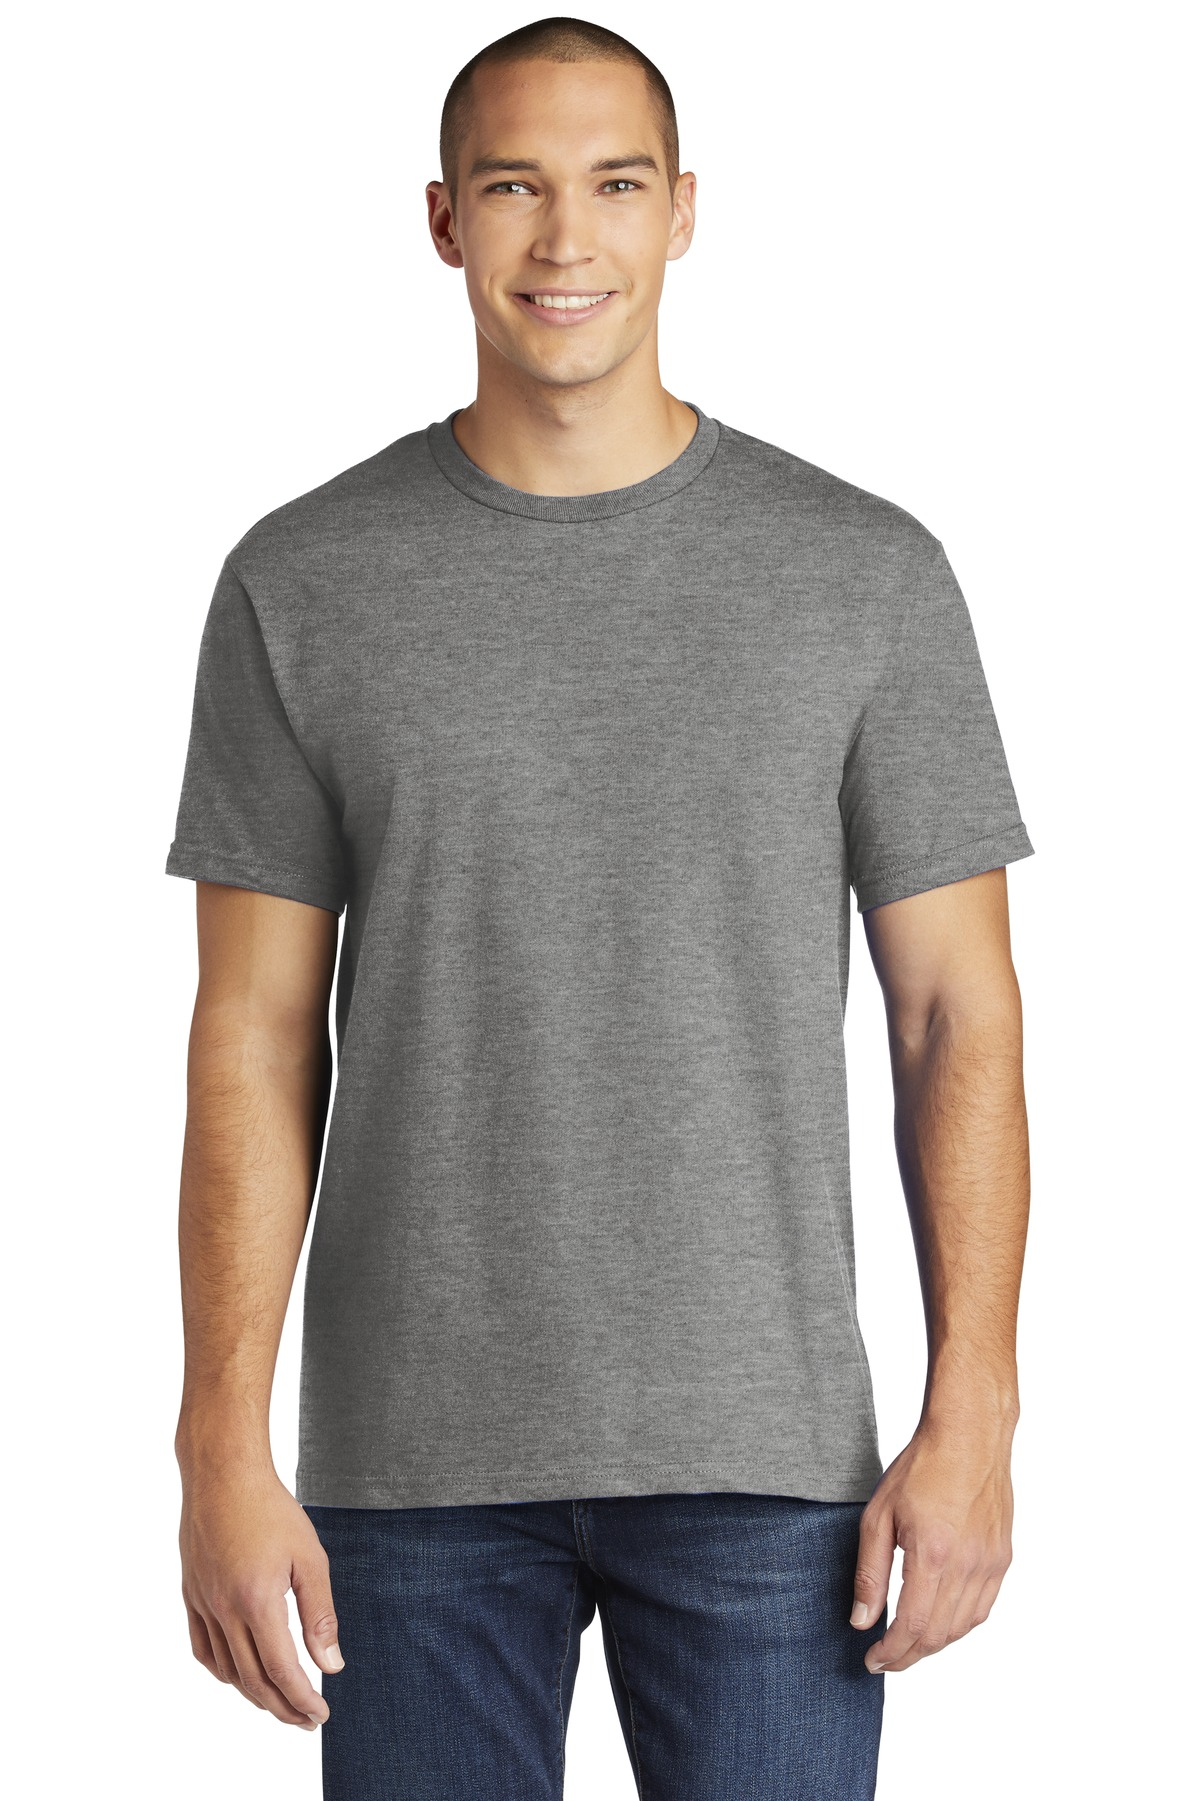 H graphiteheather model front